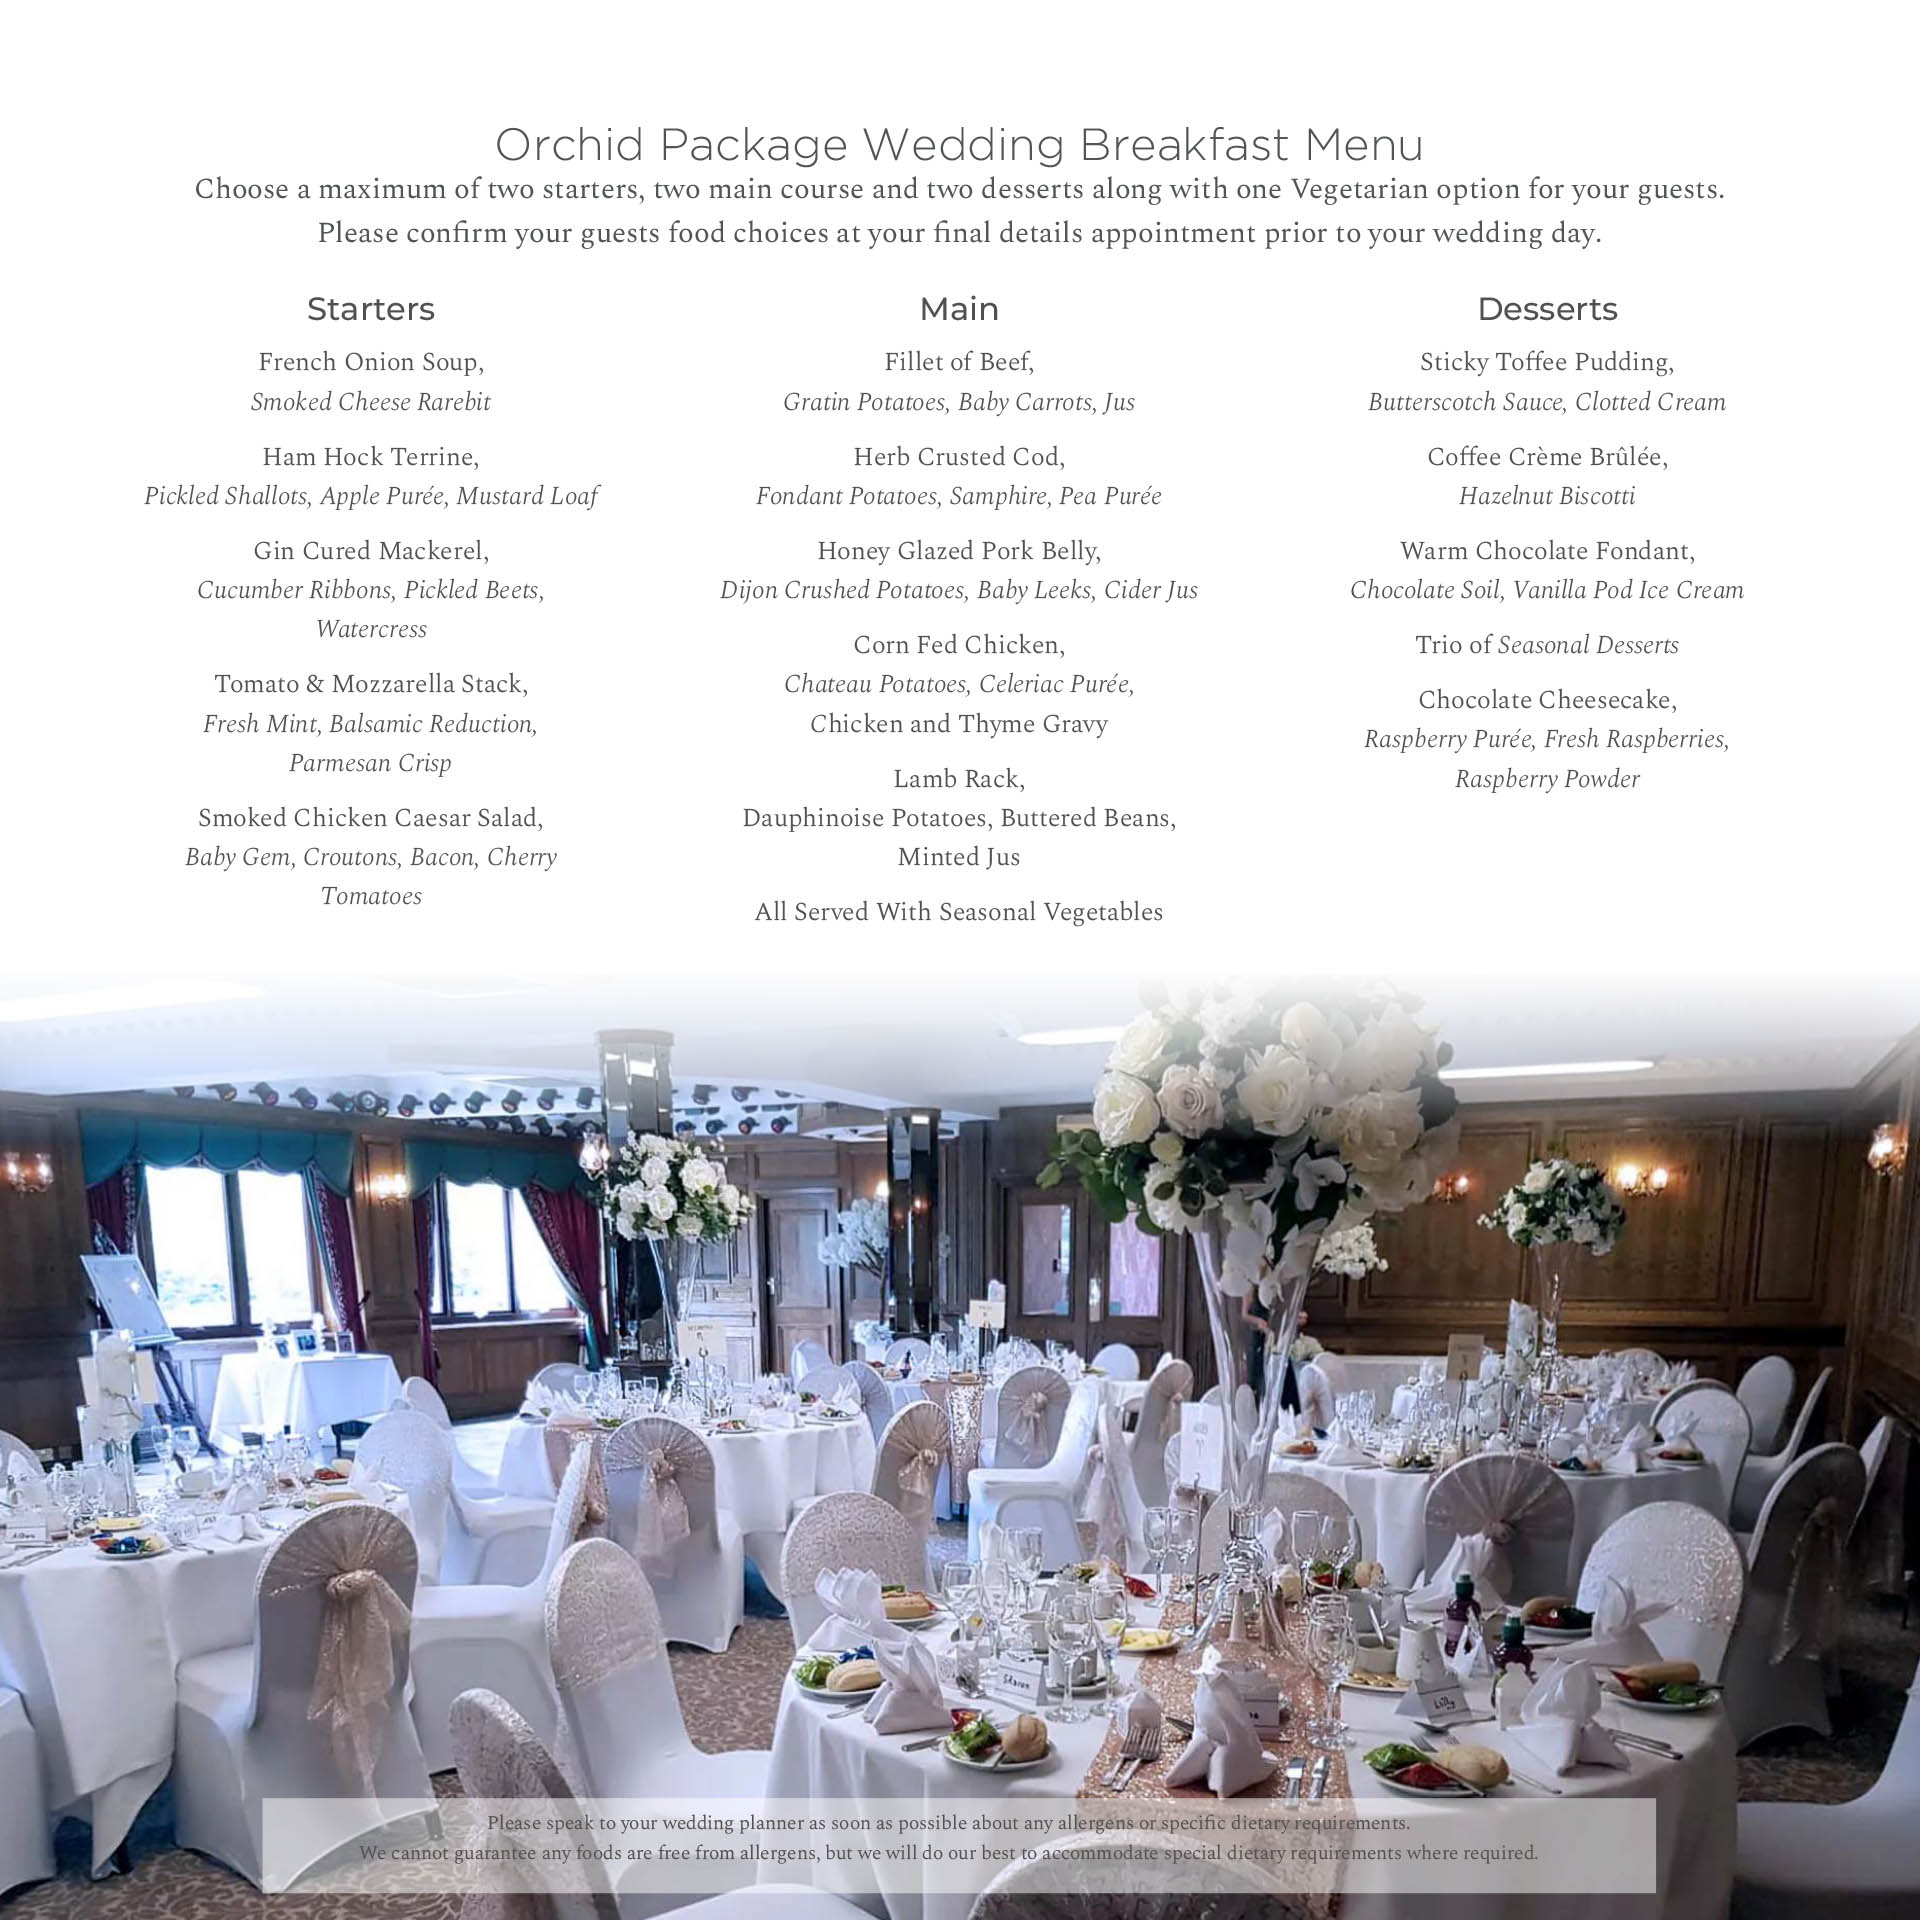 Orchid Package Menu Bredbury Hall Wedding Venue in Stockport Cheshire